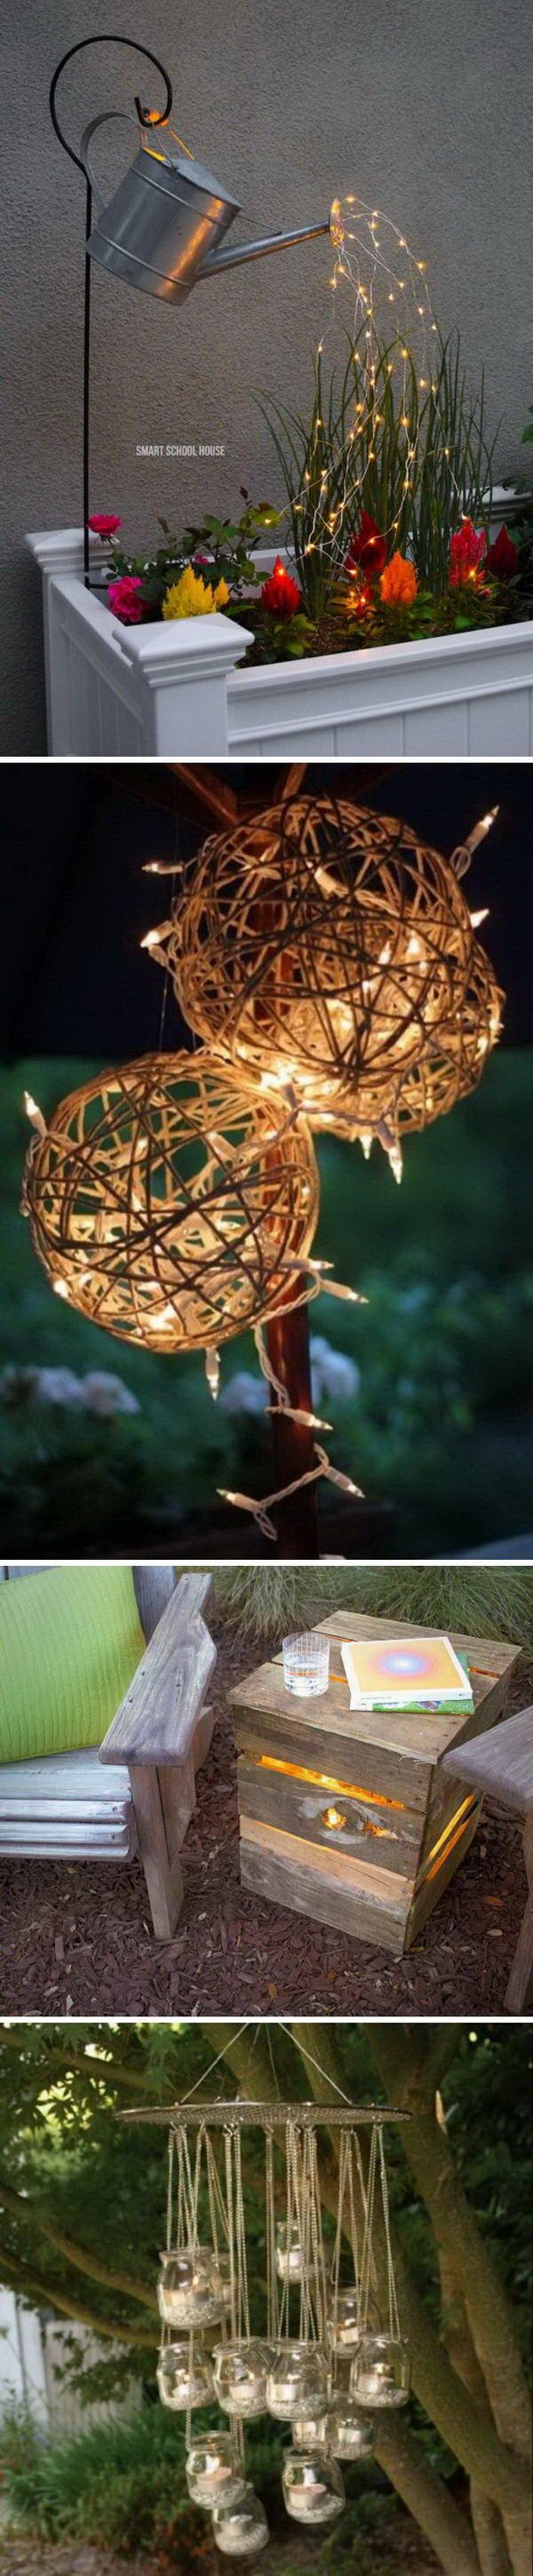 Amazing Outdoor Lighting Ideas.